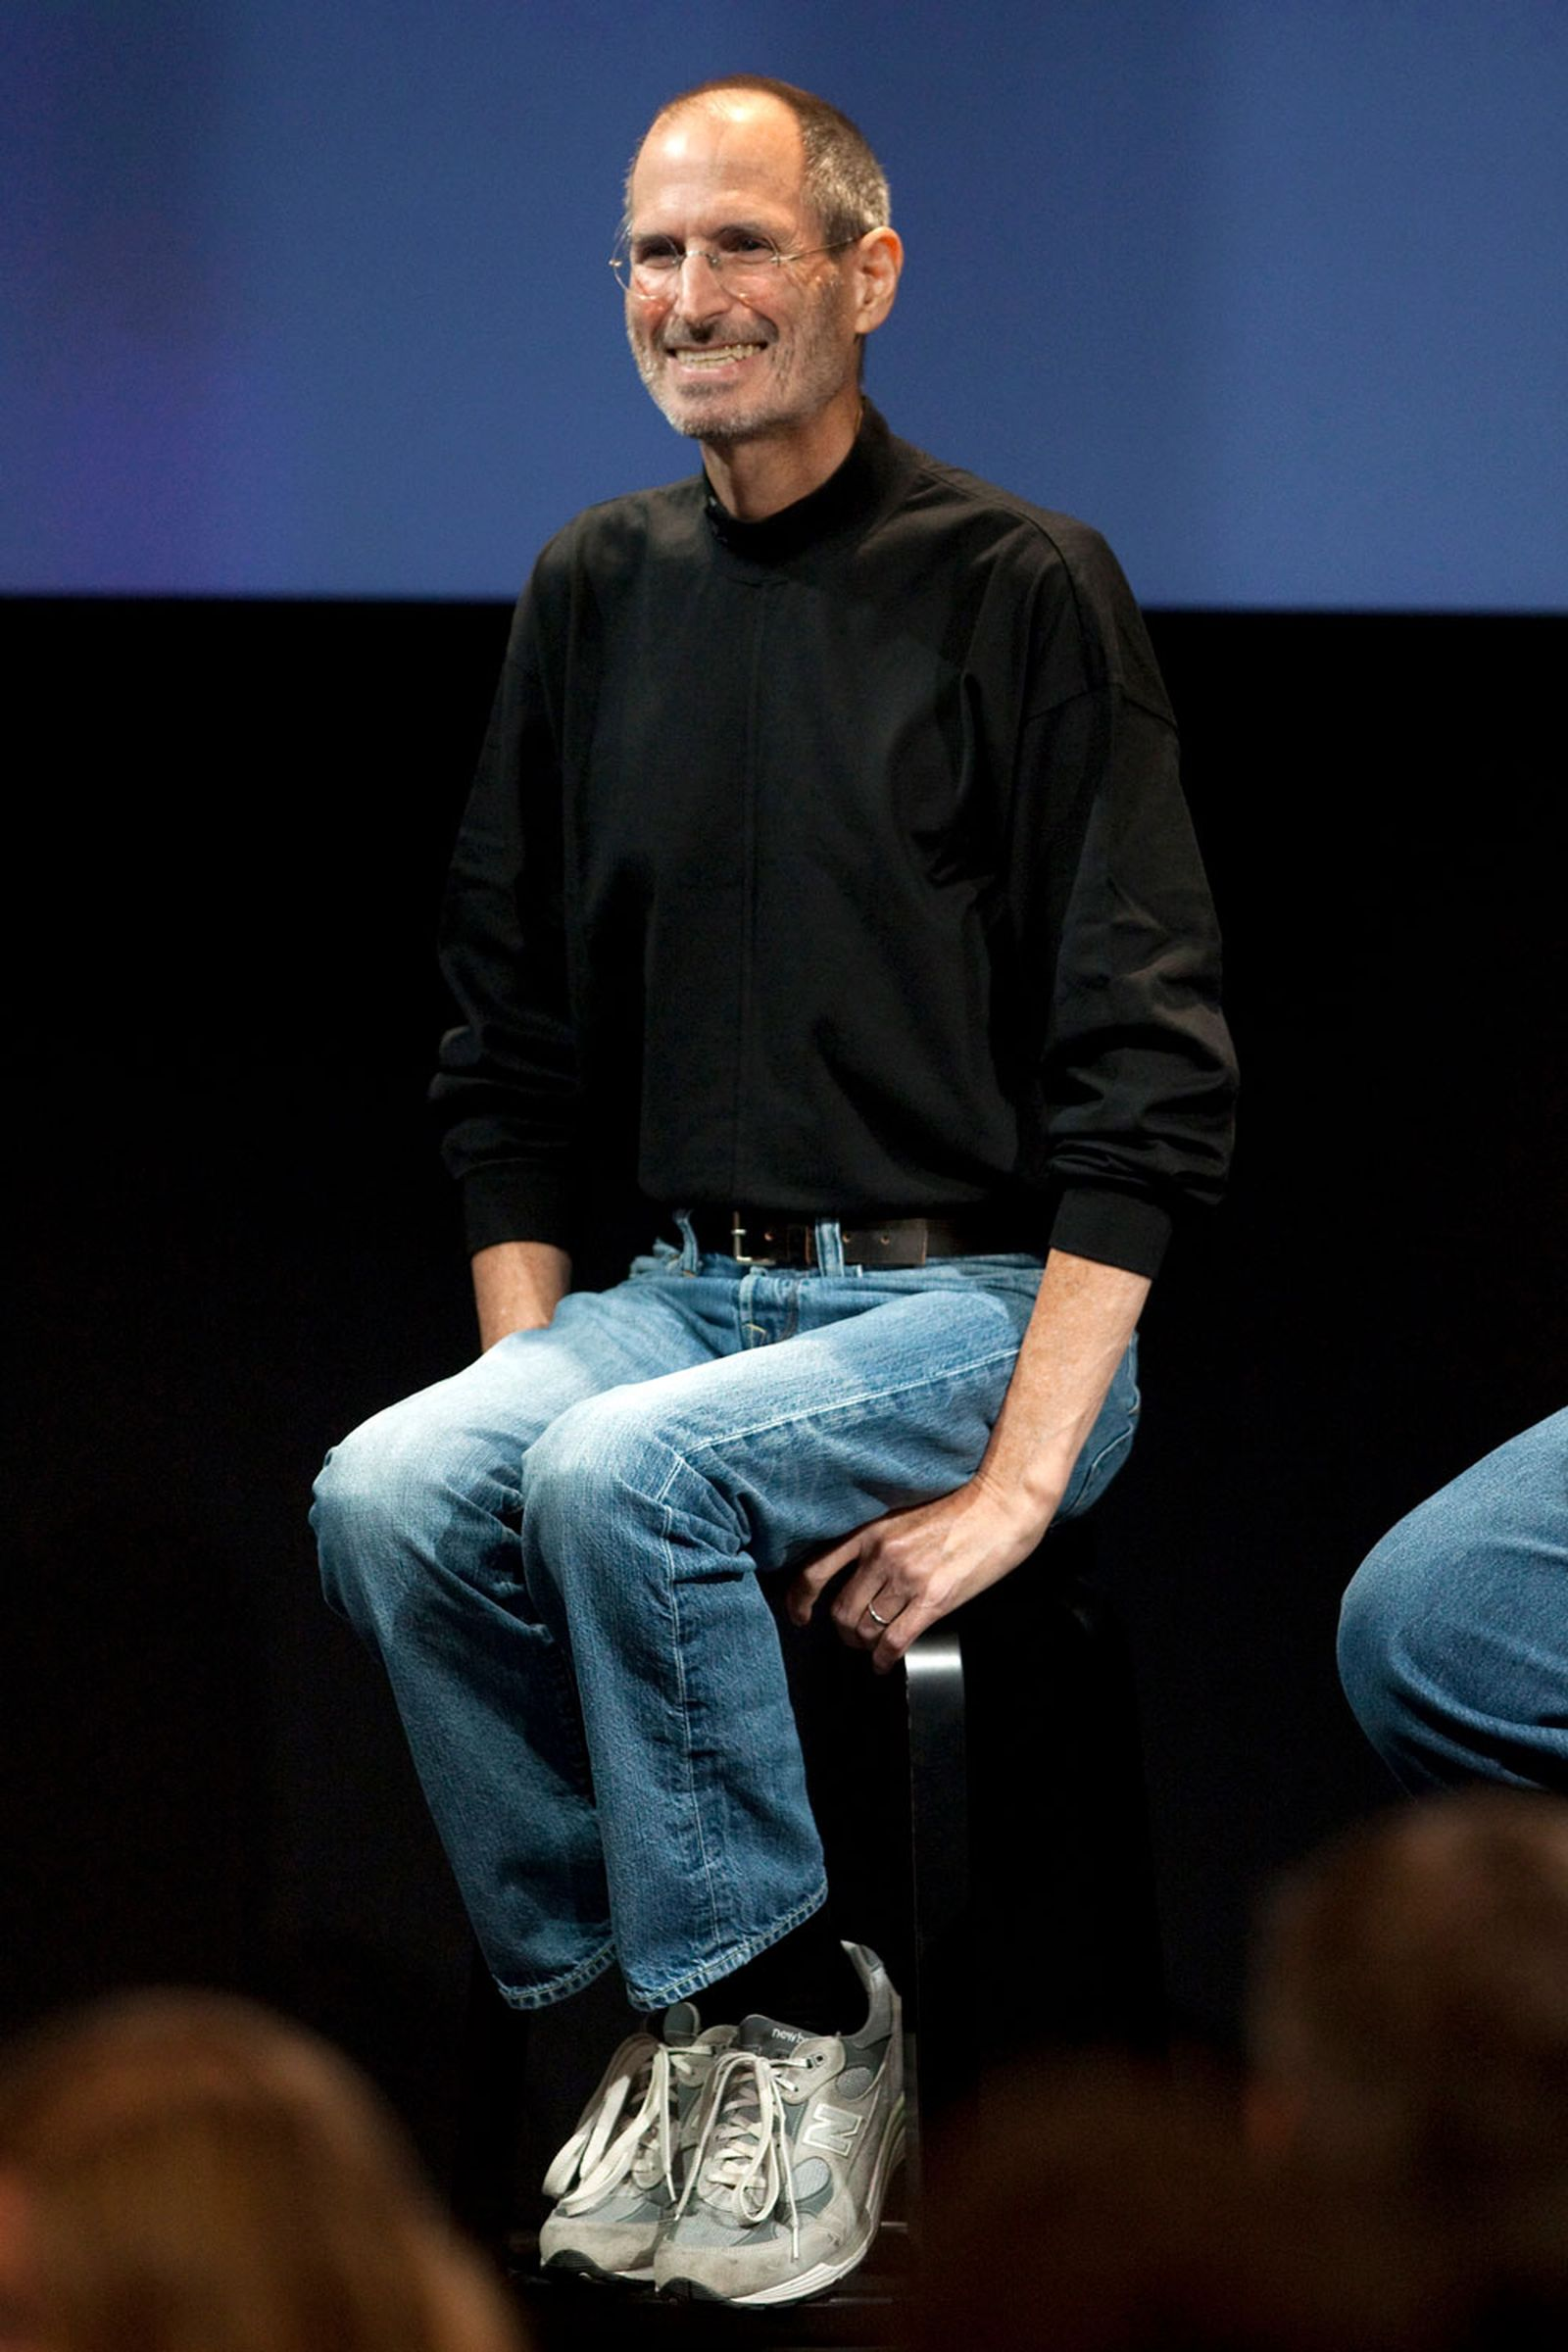 steve jobs new balance keynote 2019 apple